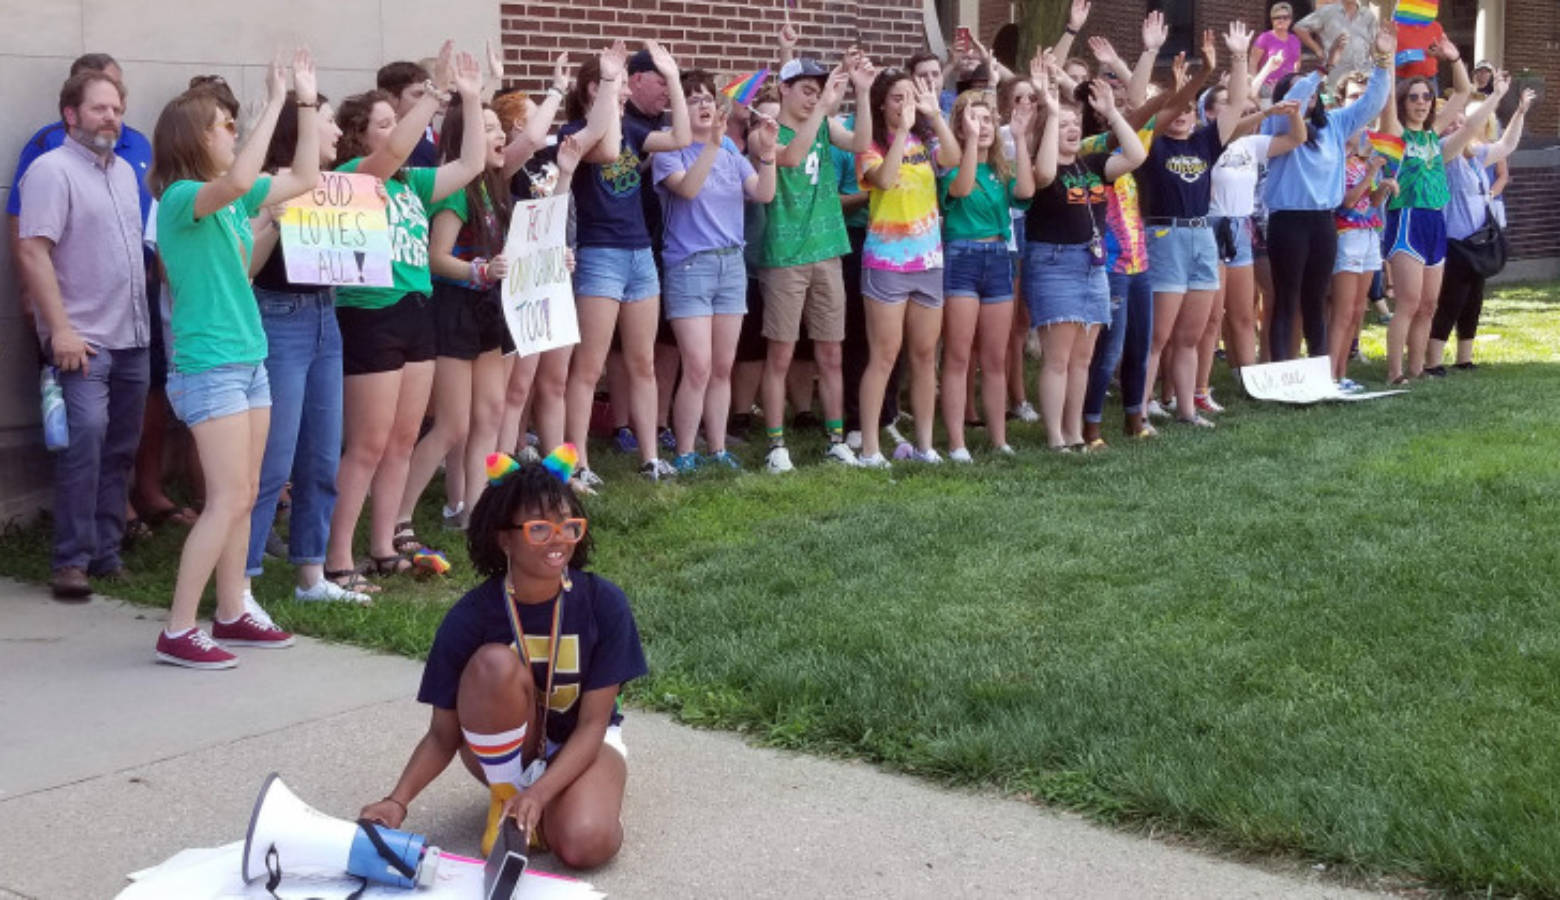 Student organizer Brooklynn Thorpe uses a megaphone to amplify music as fellow students lead school chants and cheers outside of the Archdiocese of Indianapolis during a protest Thursday, June 27, 2019.